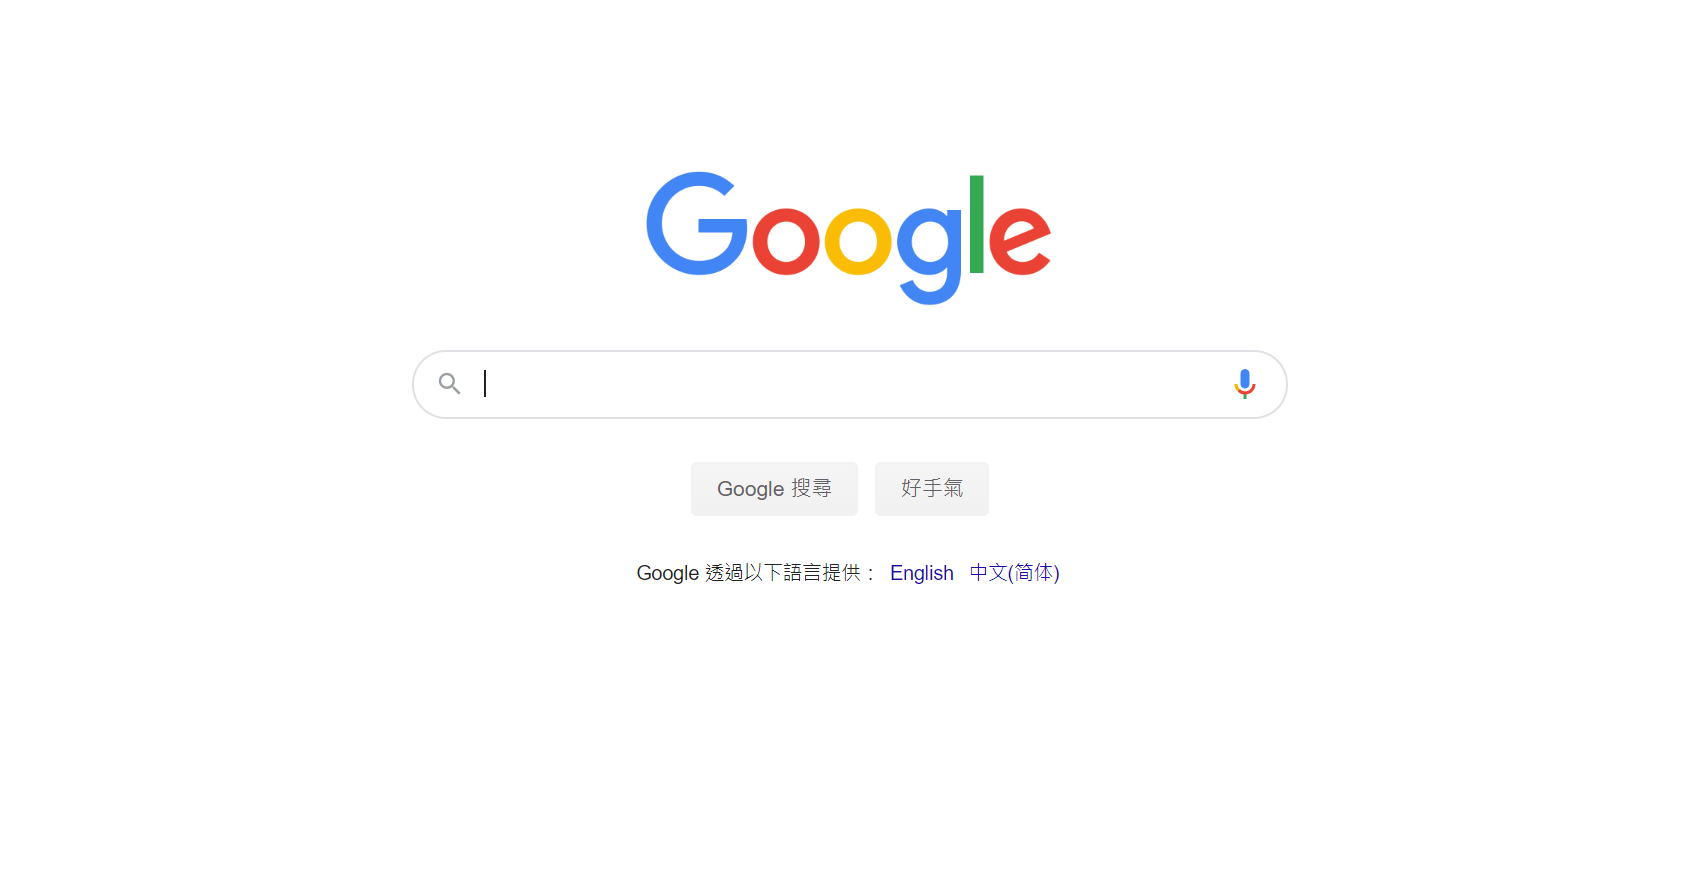 The homepage of Google